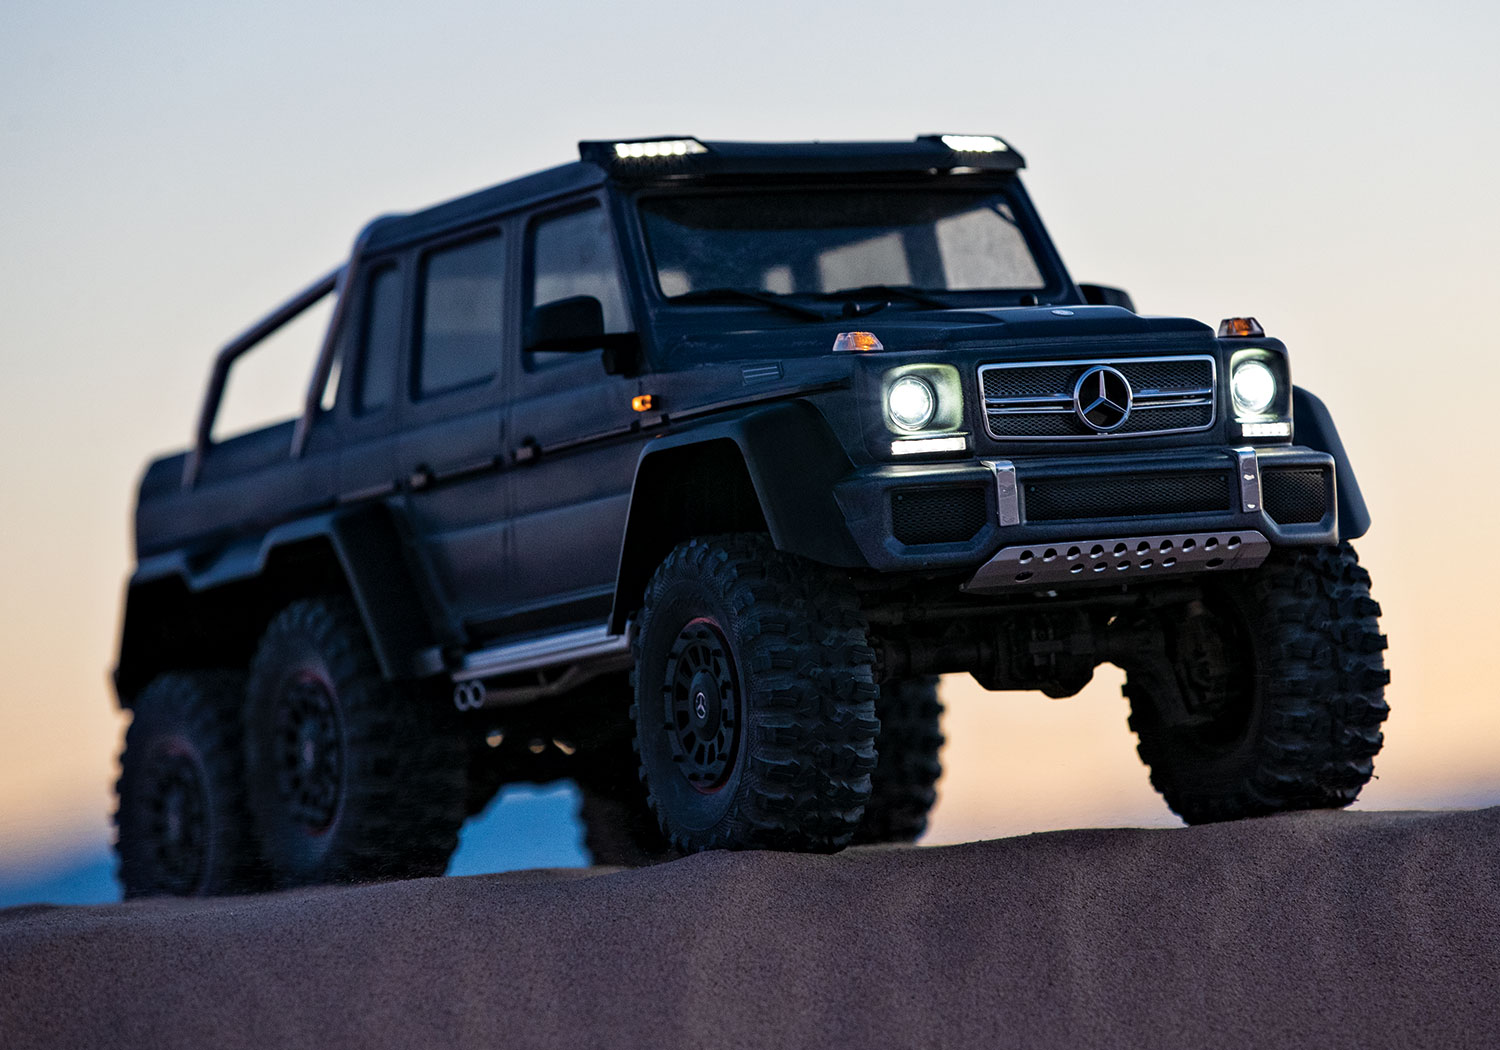 TRX-6 with Mercedes-Benz G 63 AMG 6x6 LED Lights